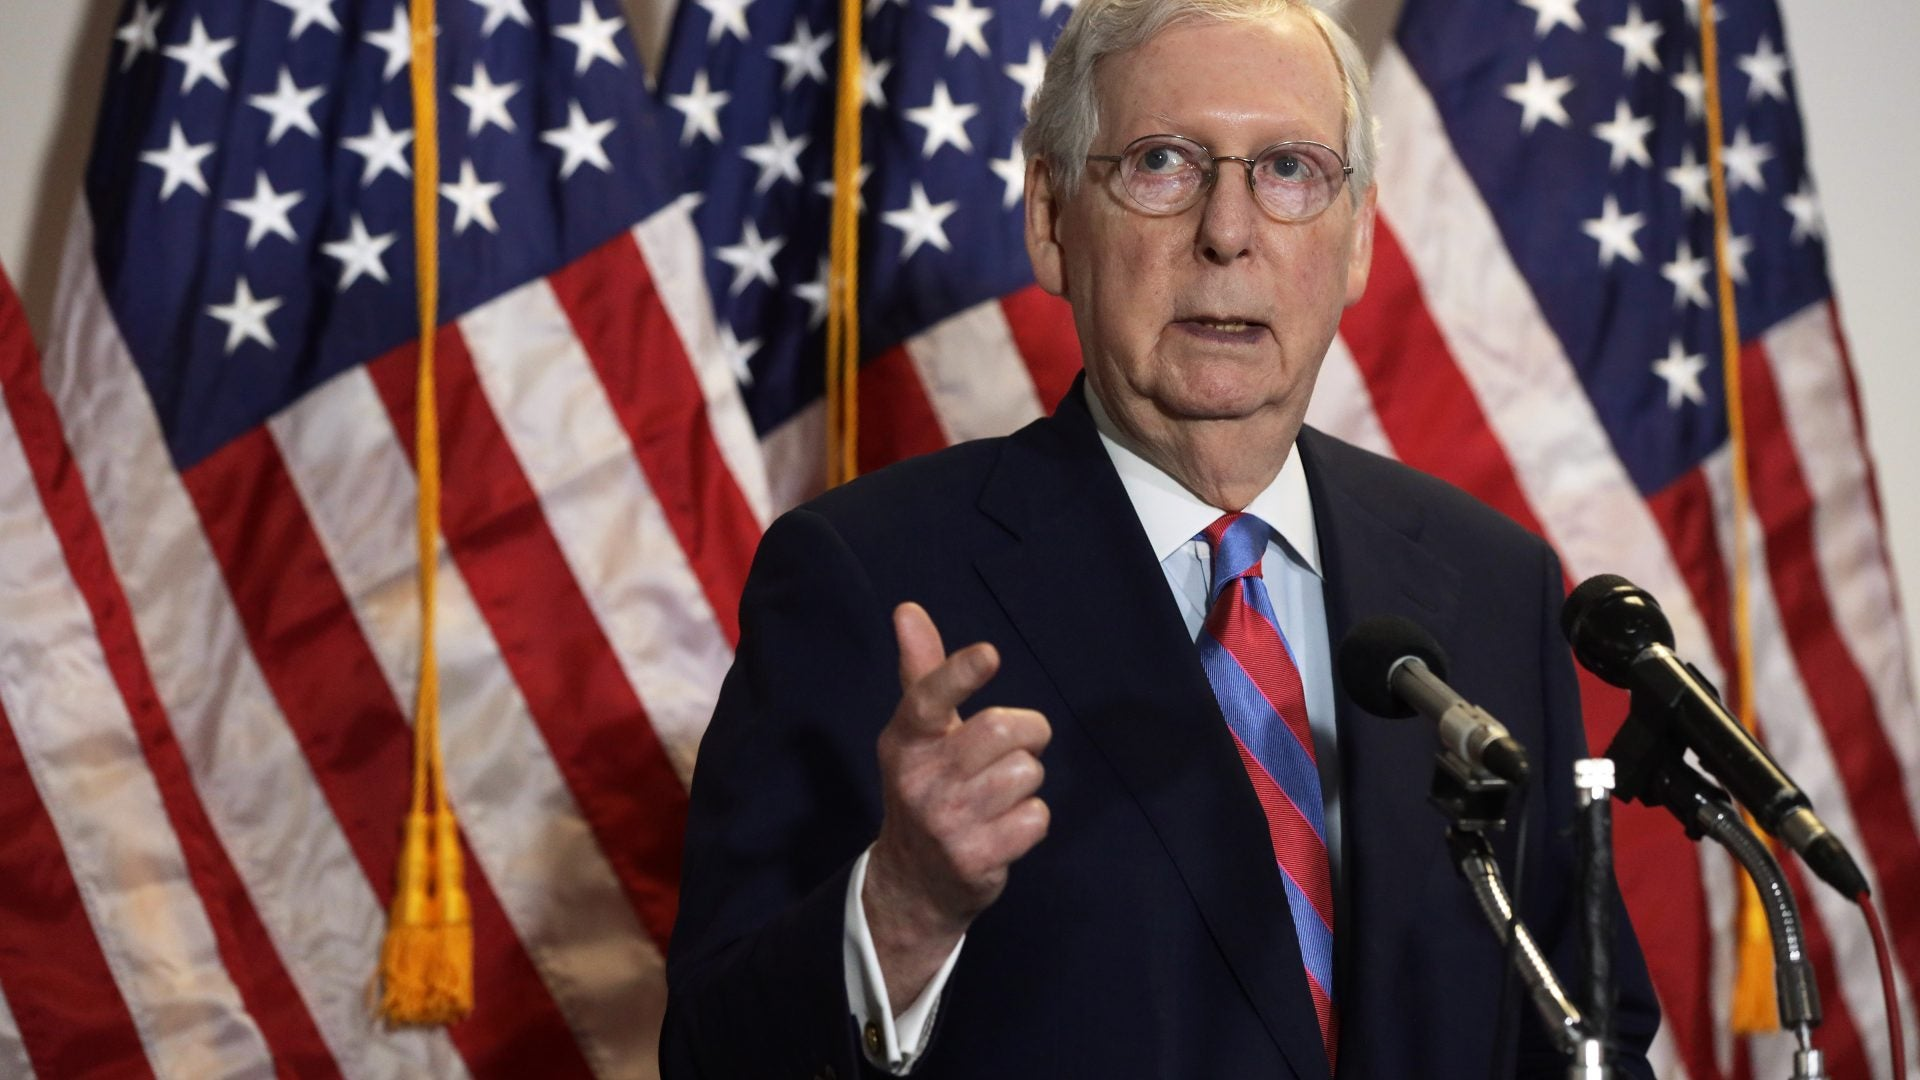 New GOP Stimulus Plan Includes Another $1,200 Payment For Individuals